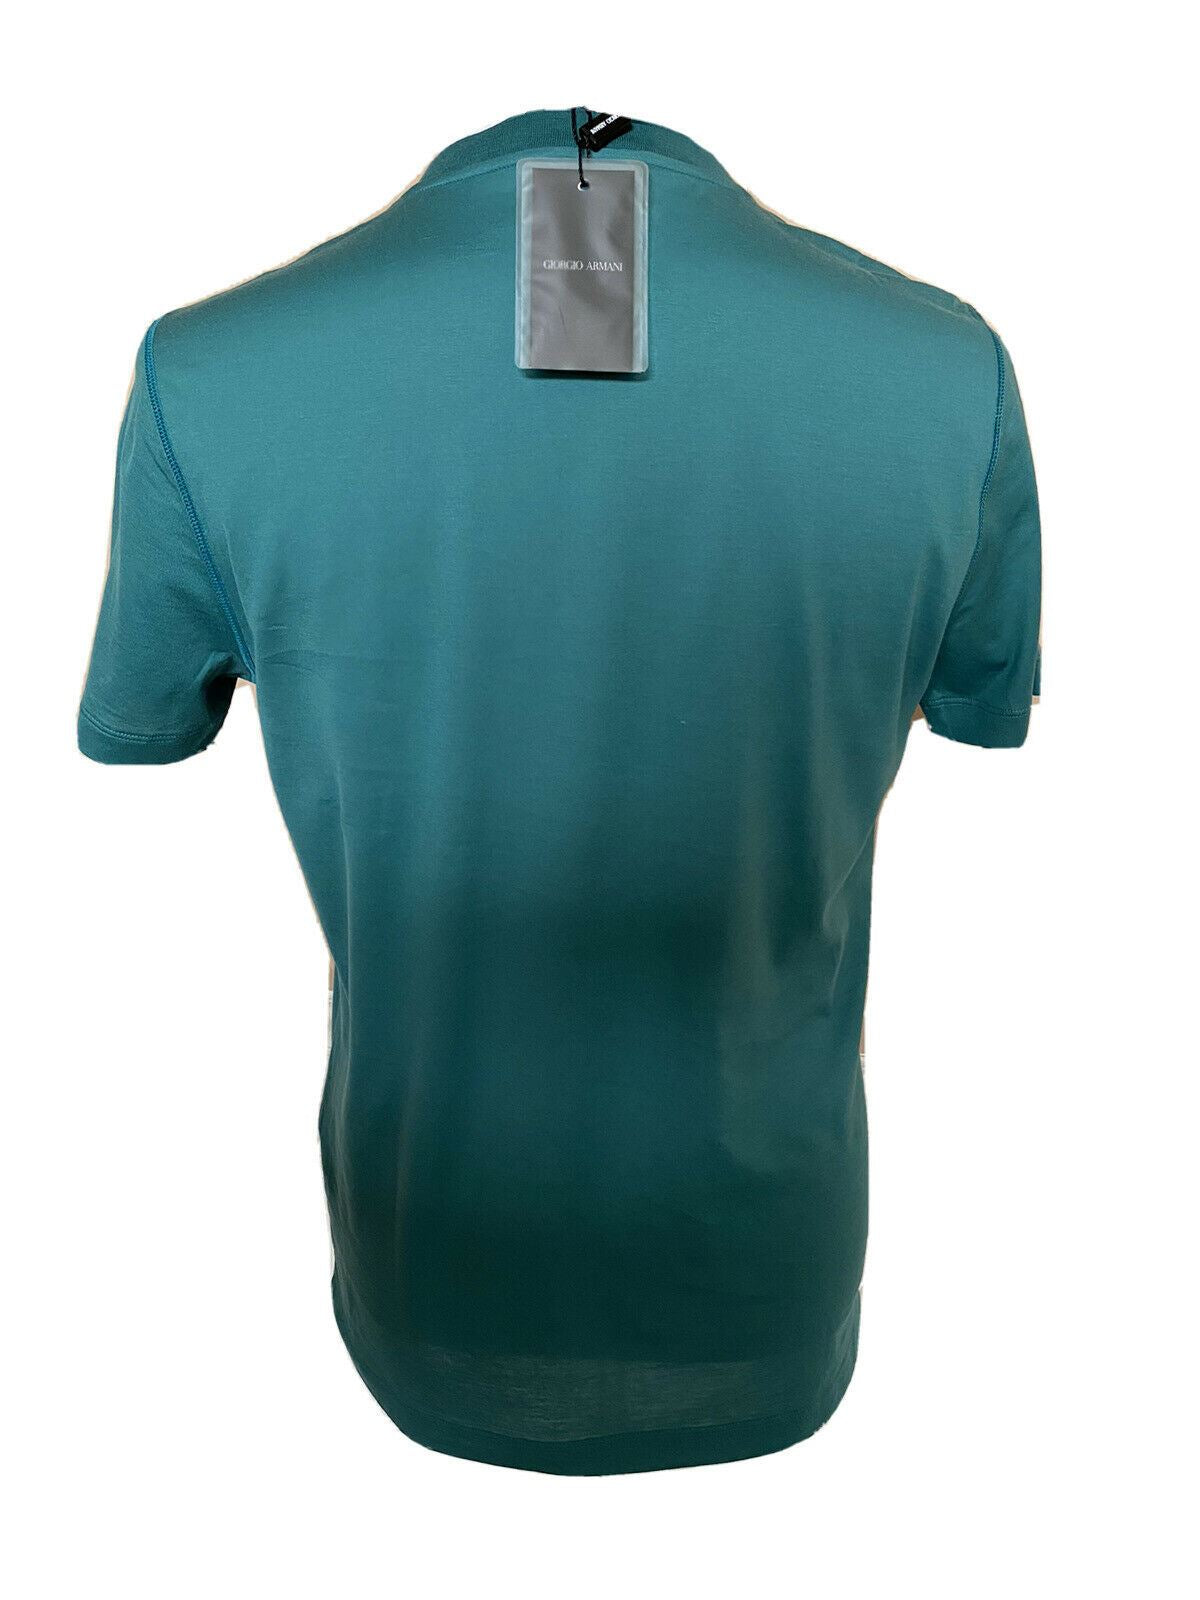 NWT $375 Giorgio Armani Green Short Sleeve T-Shirt 50 Euro 3ZST55 Made in Italy